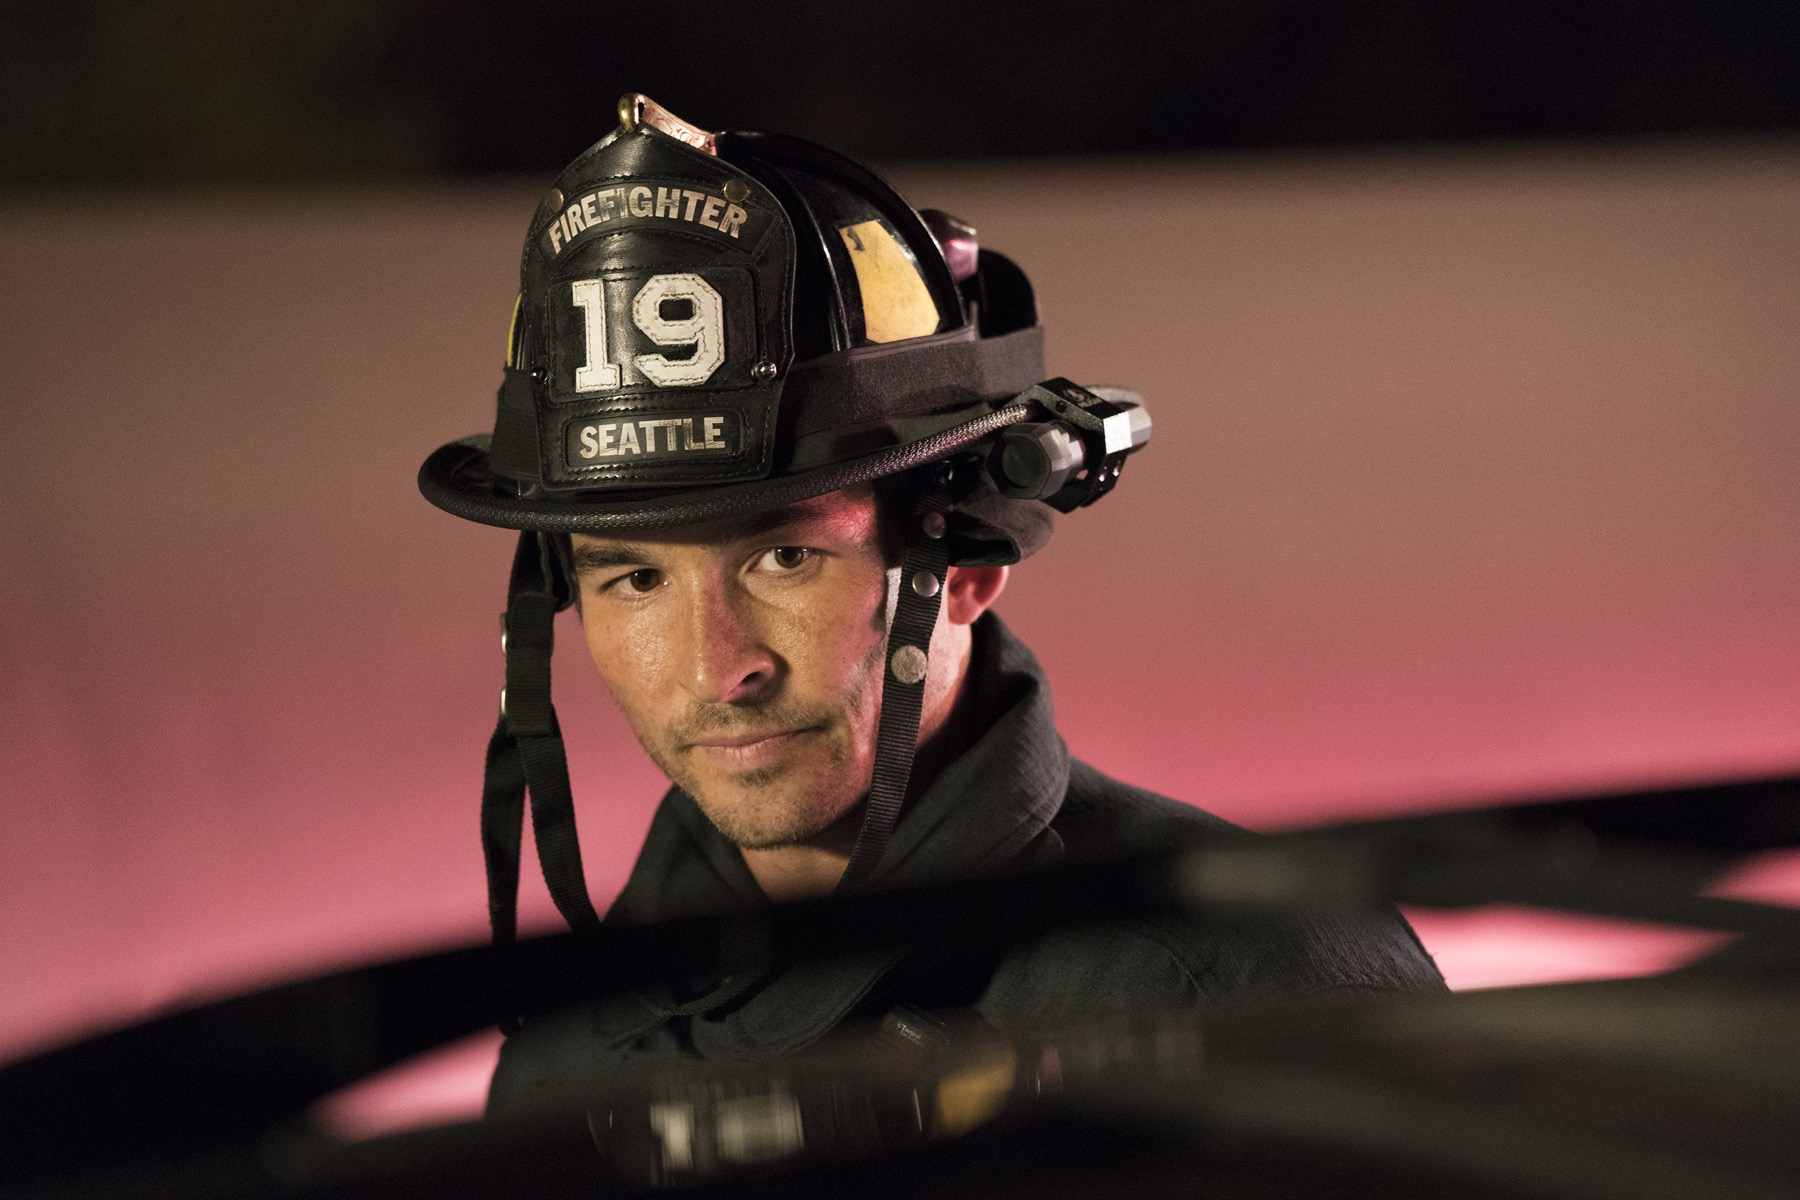 Station 19 Series Premiere